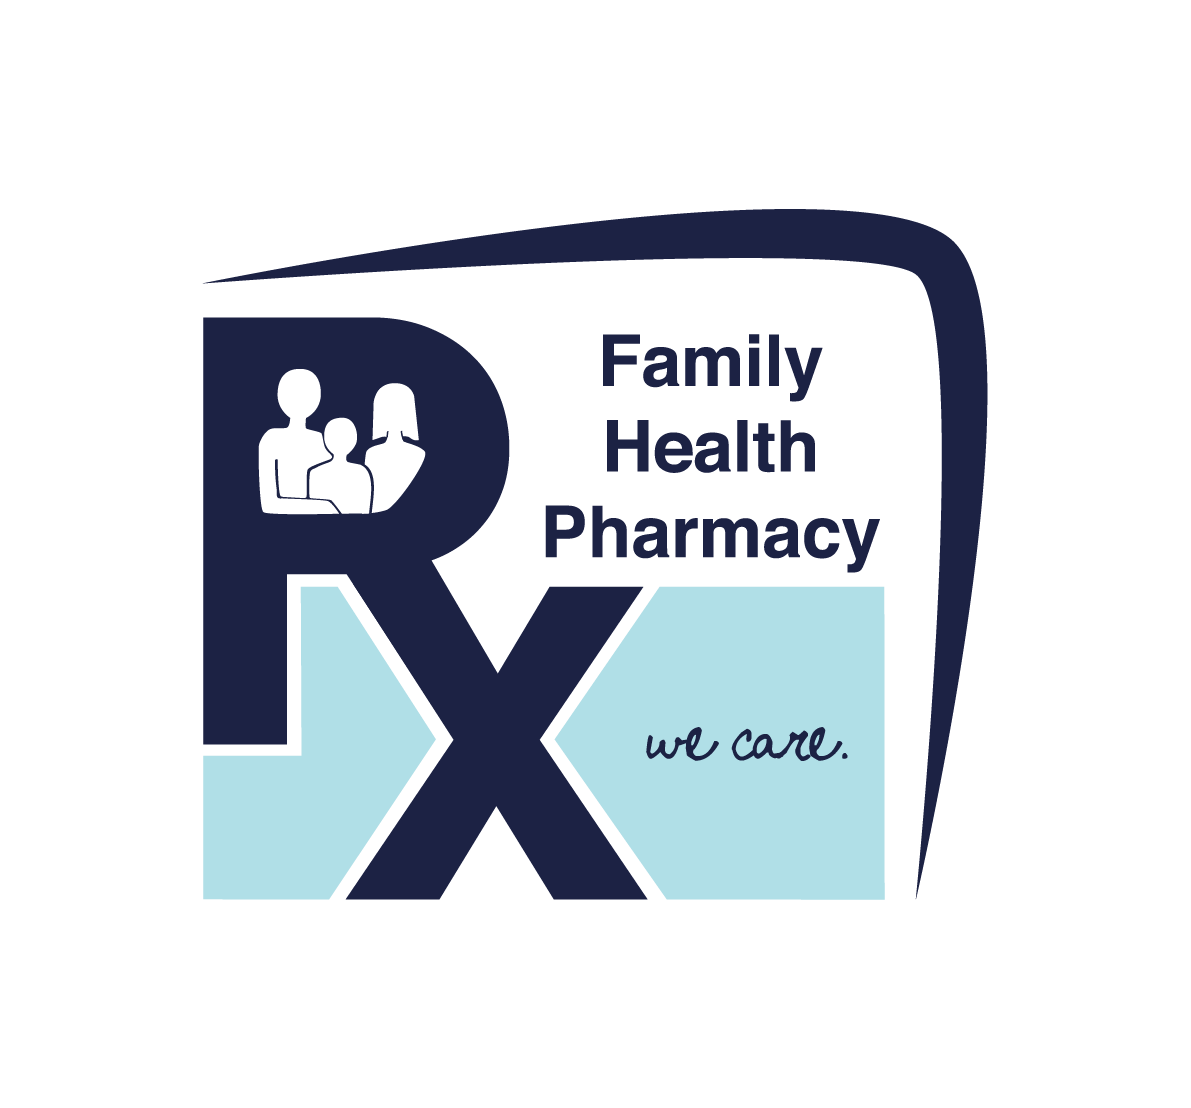 Family Health Pharmacy